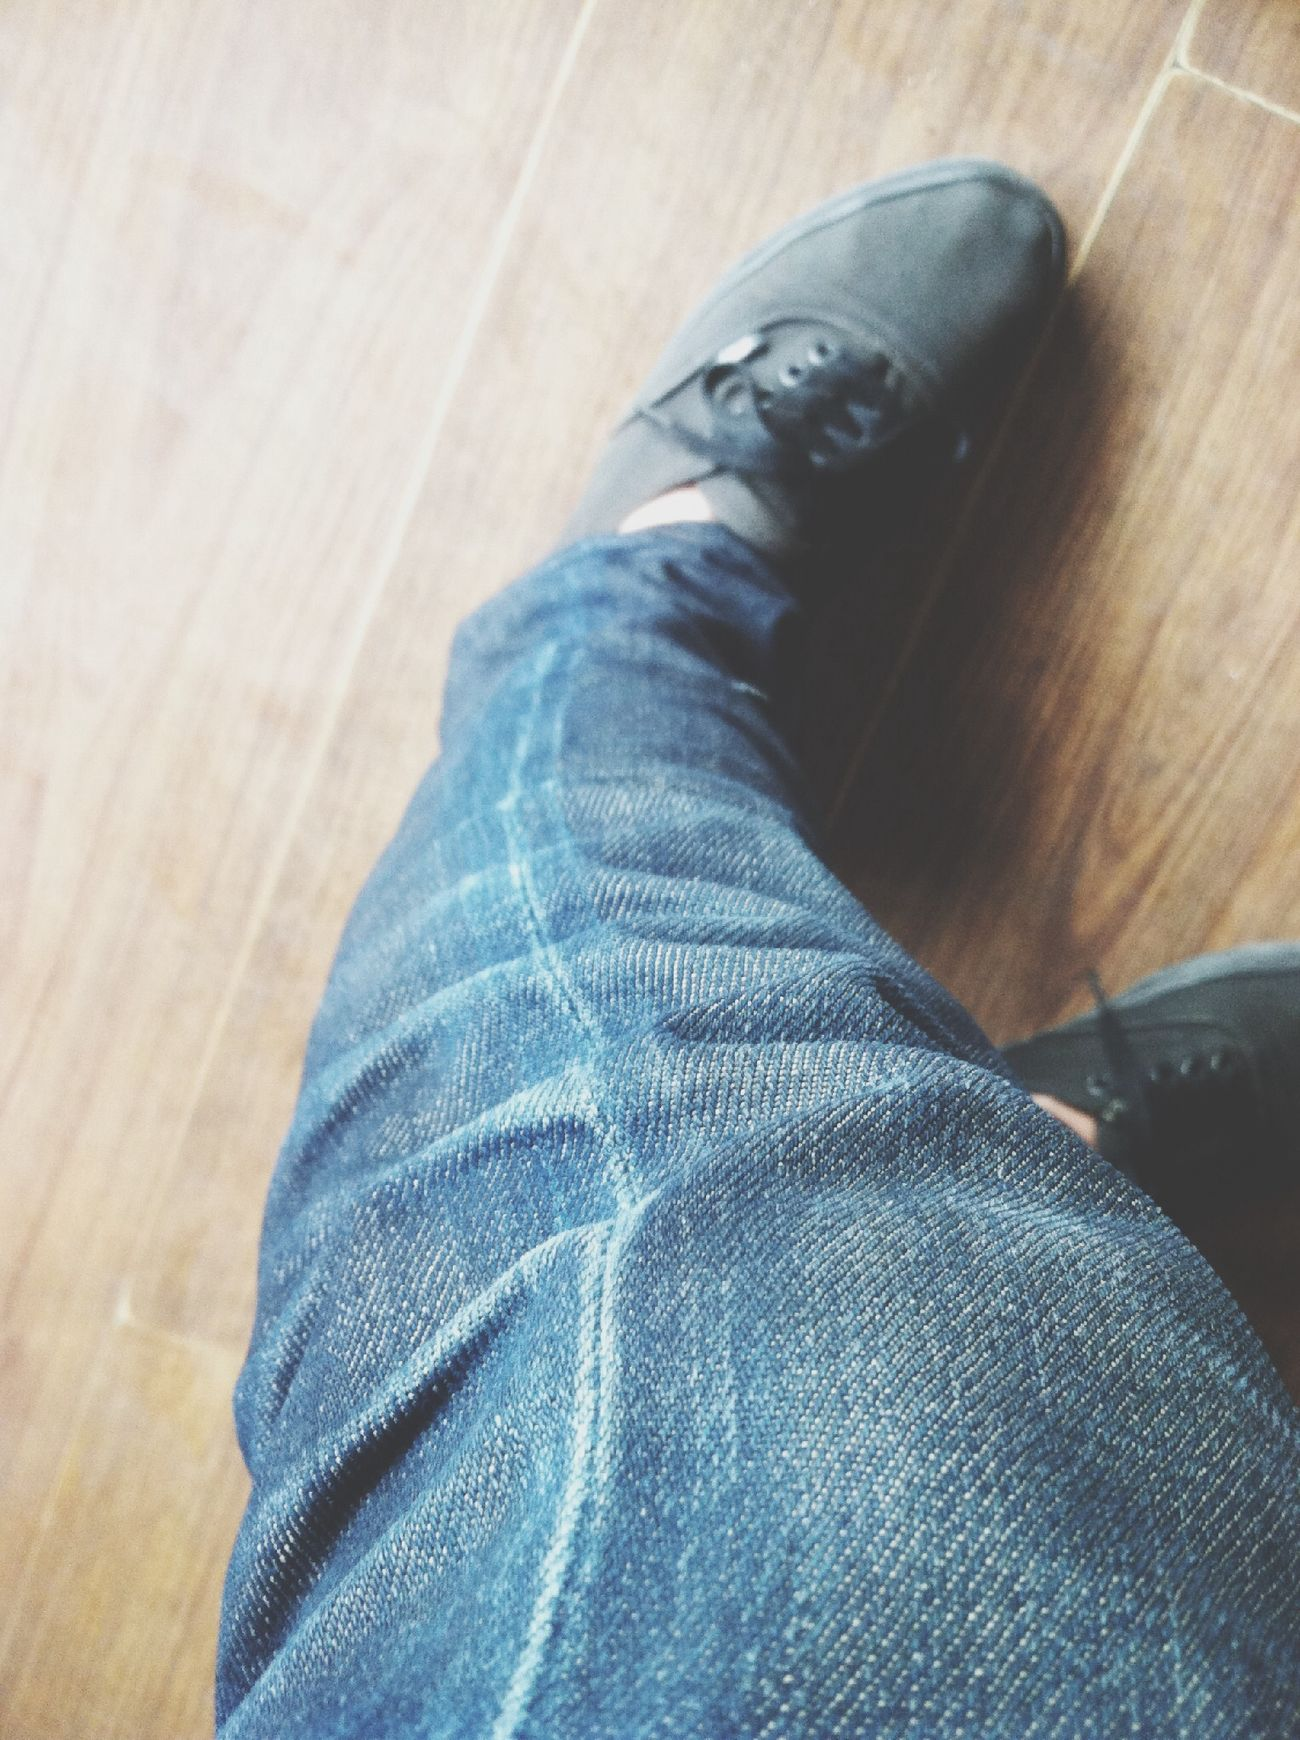 Somethingedwin Denimselvedge Fade Madeinjapan Indafdamha